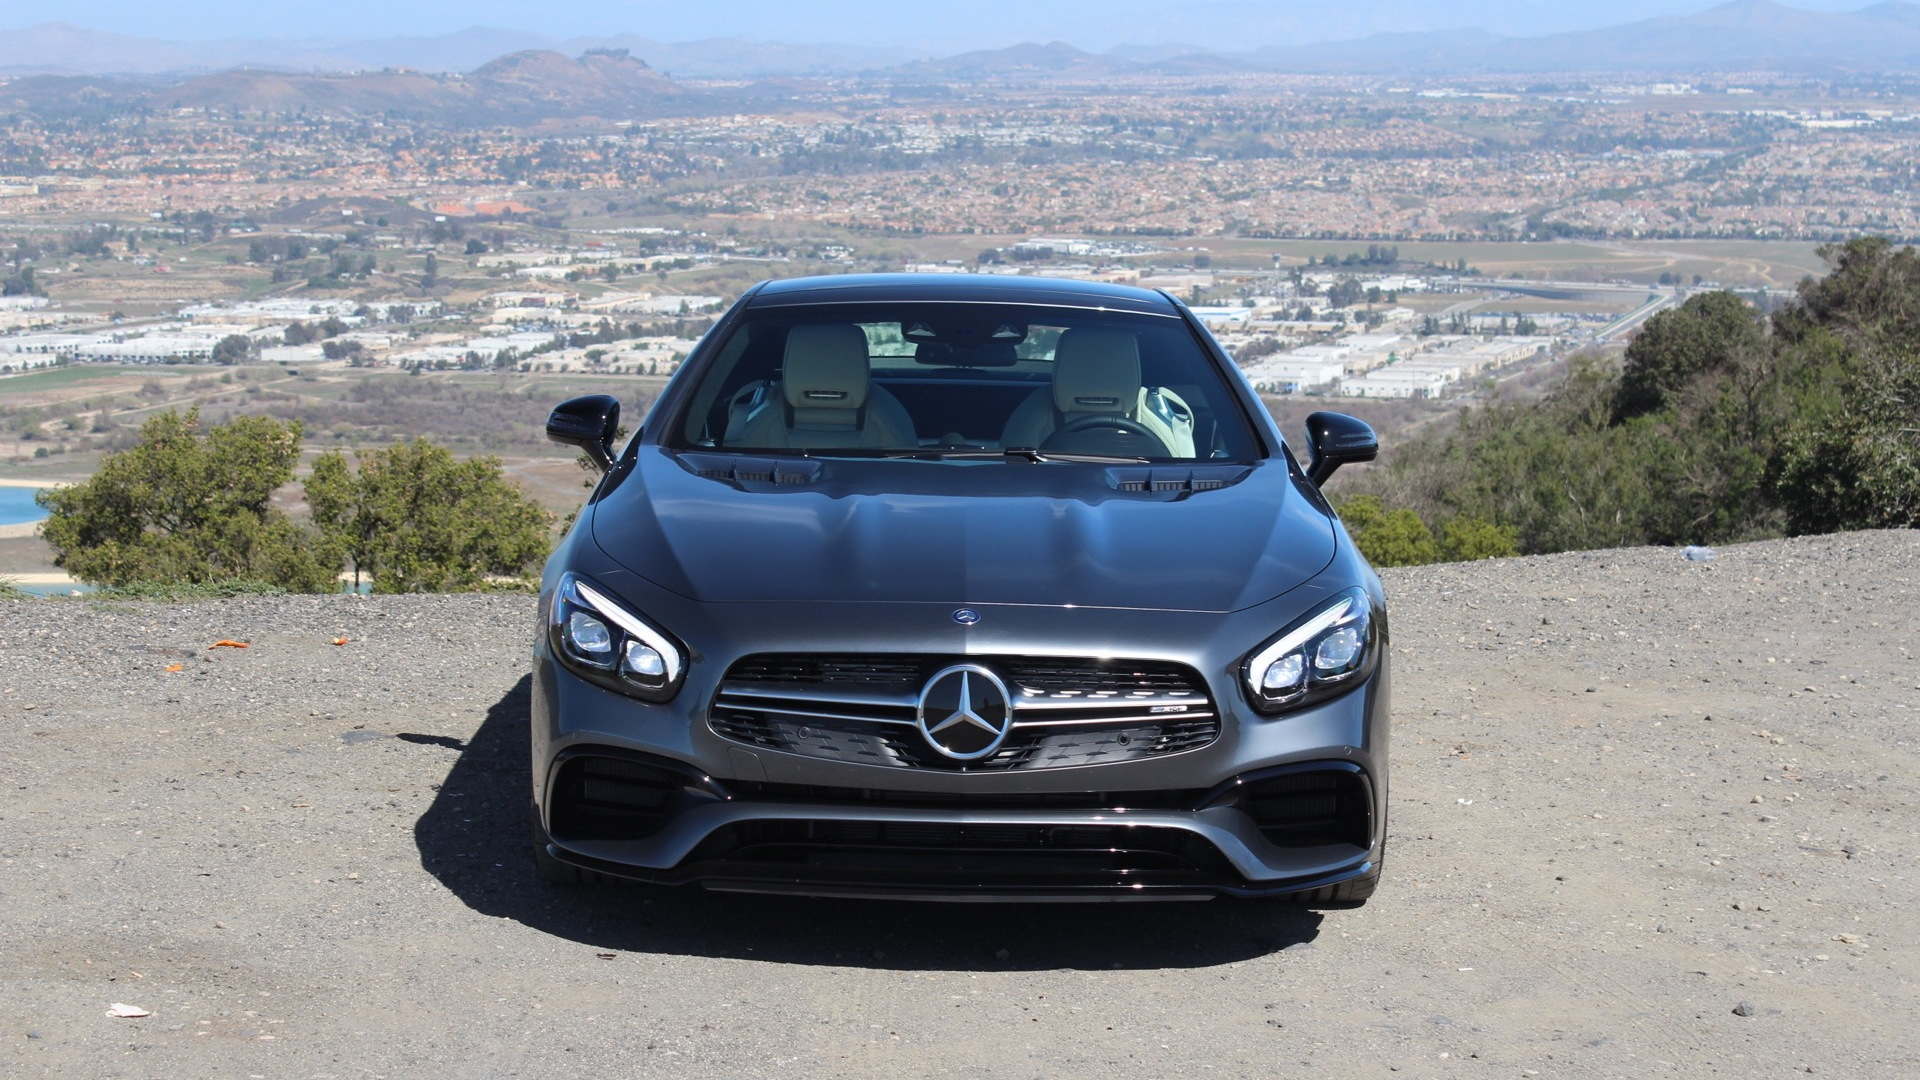 2017 Mercedes-Benz SL63 AMG  -  First Drive